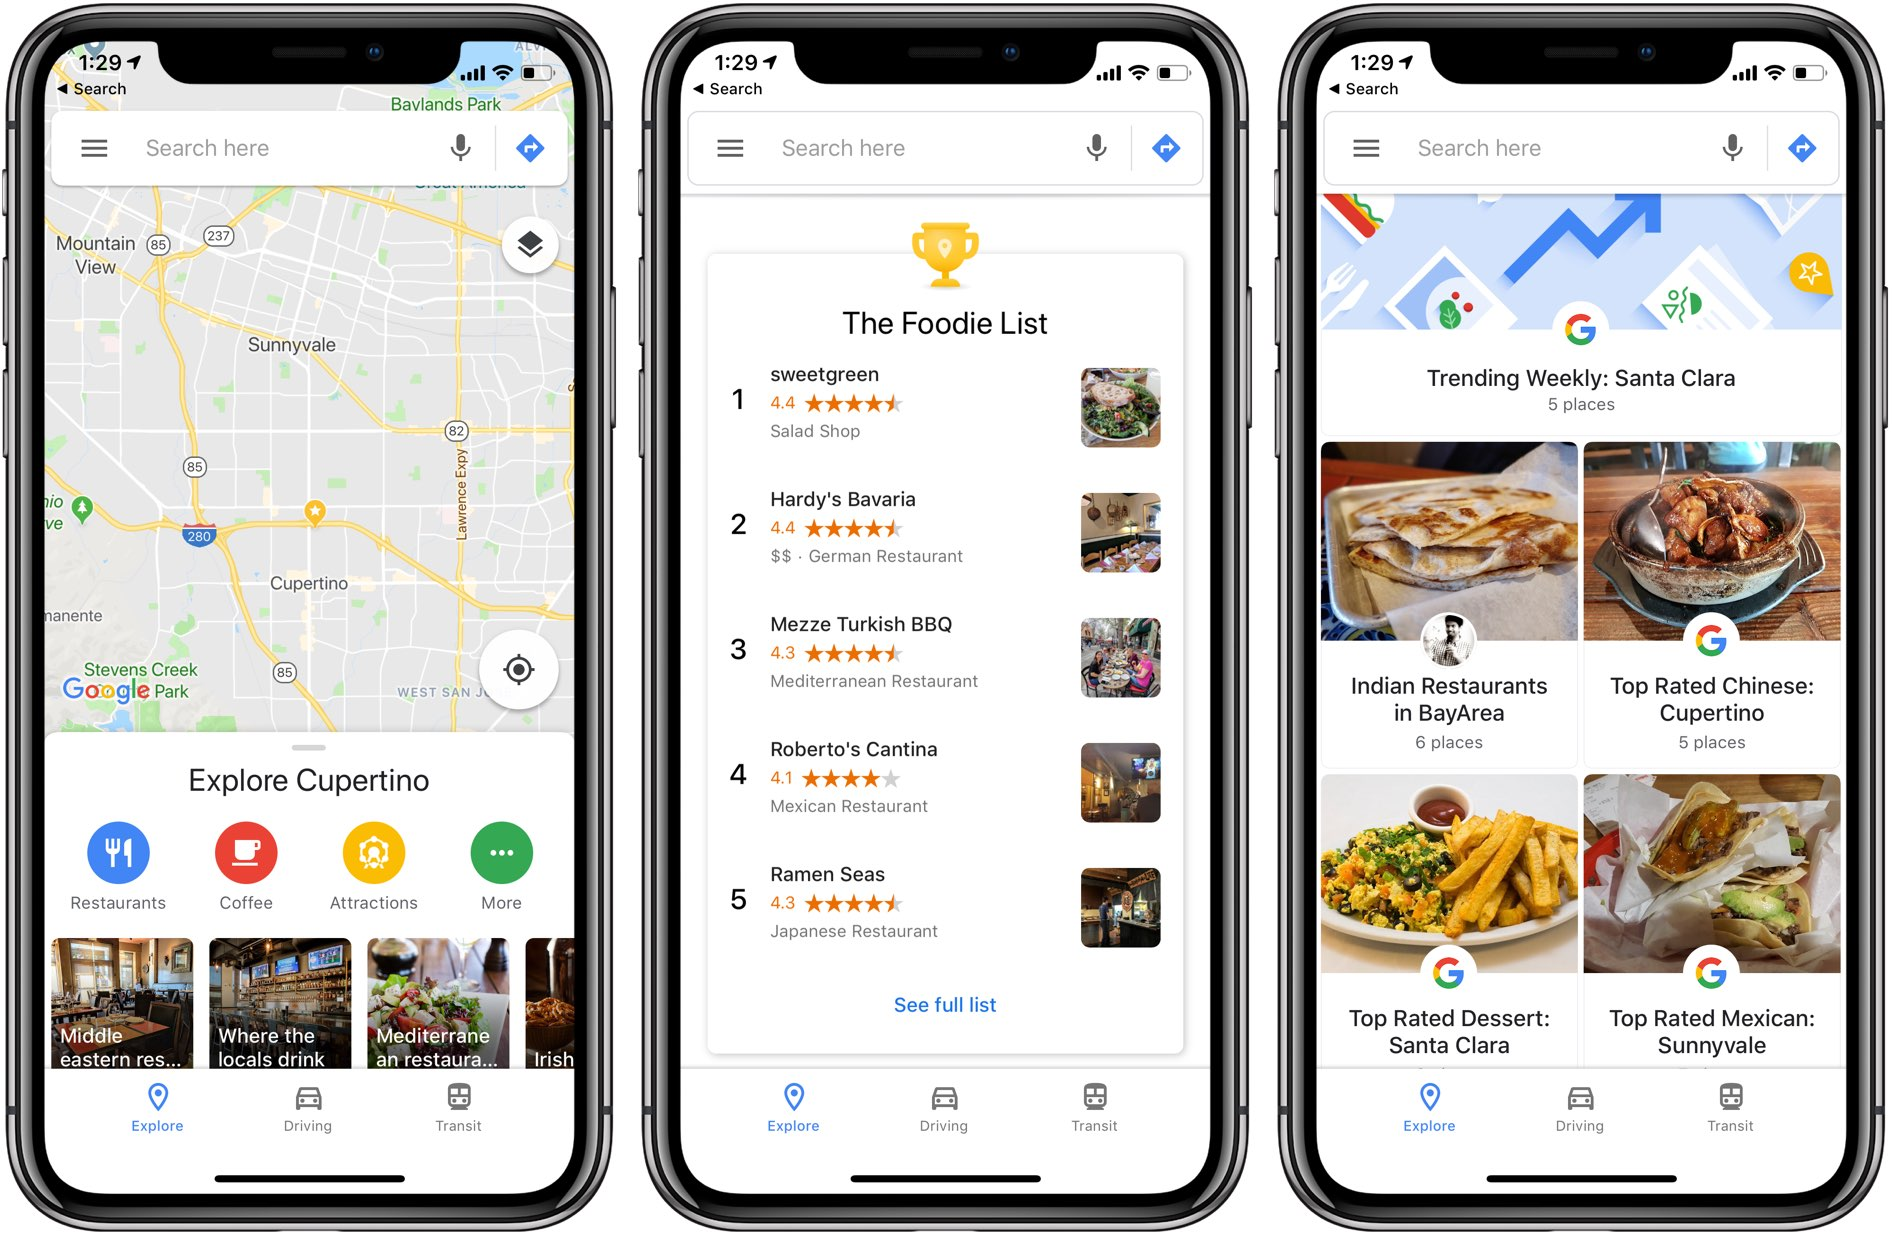 The Google Maps app has picked up a brand0new Events section